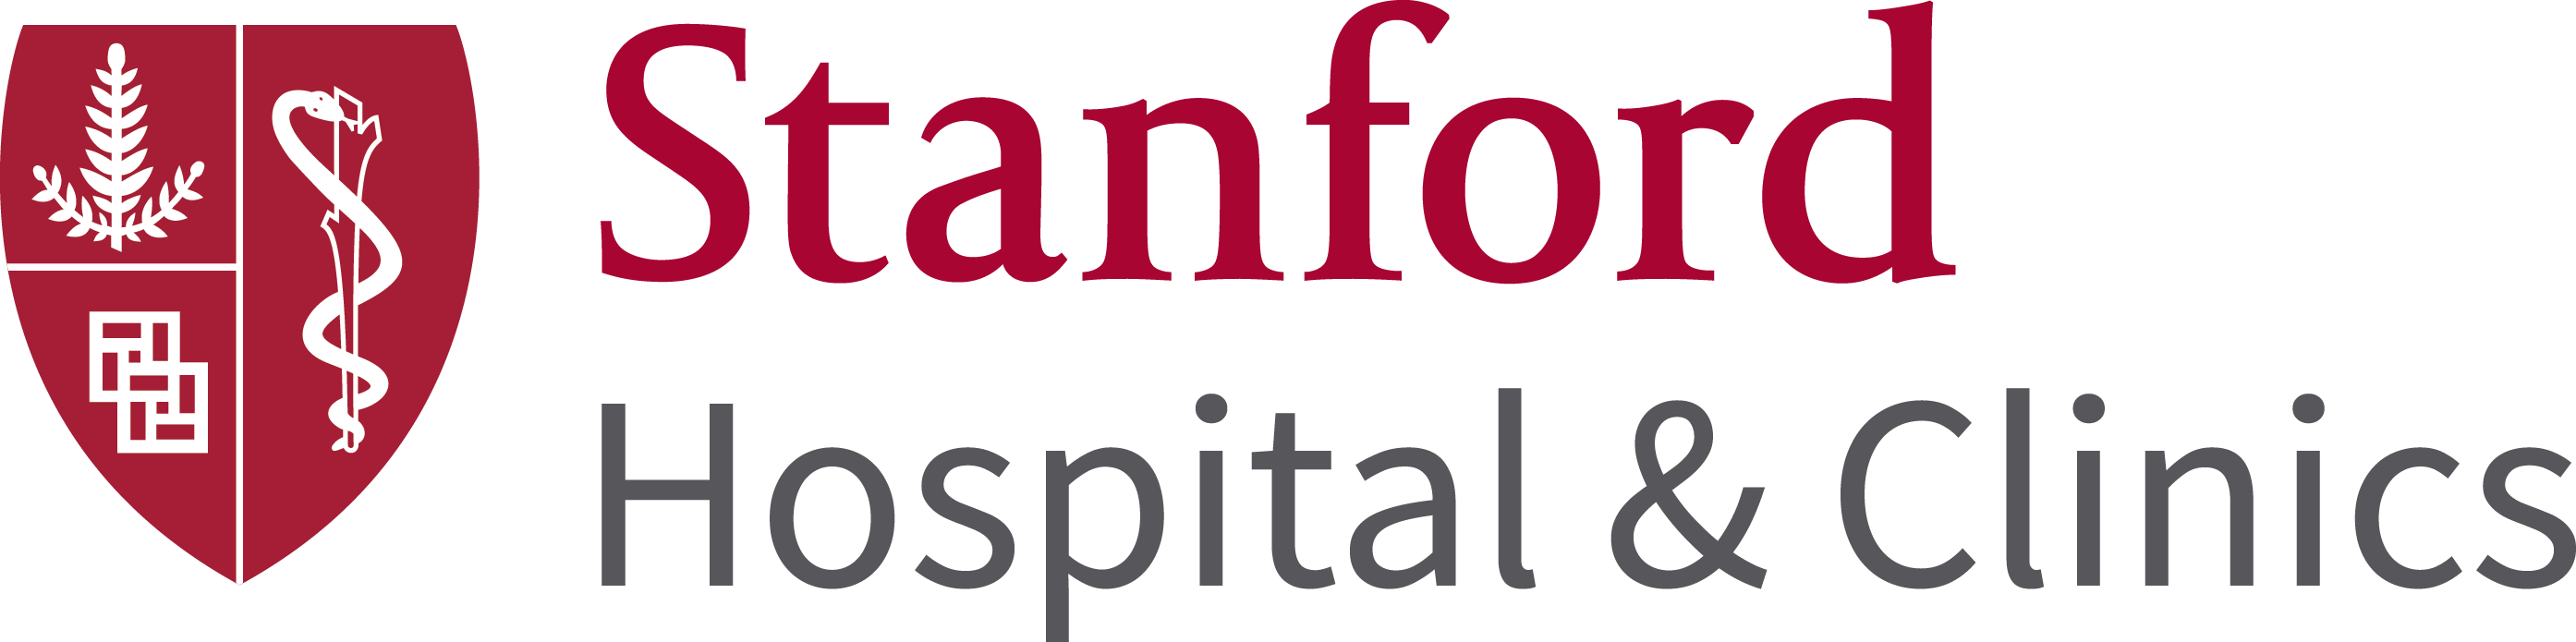 Stanford health care Logos